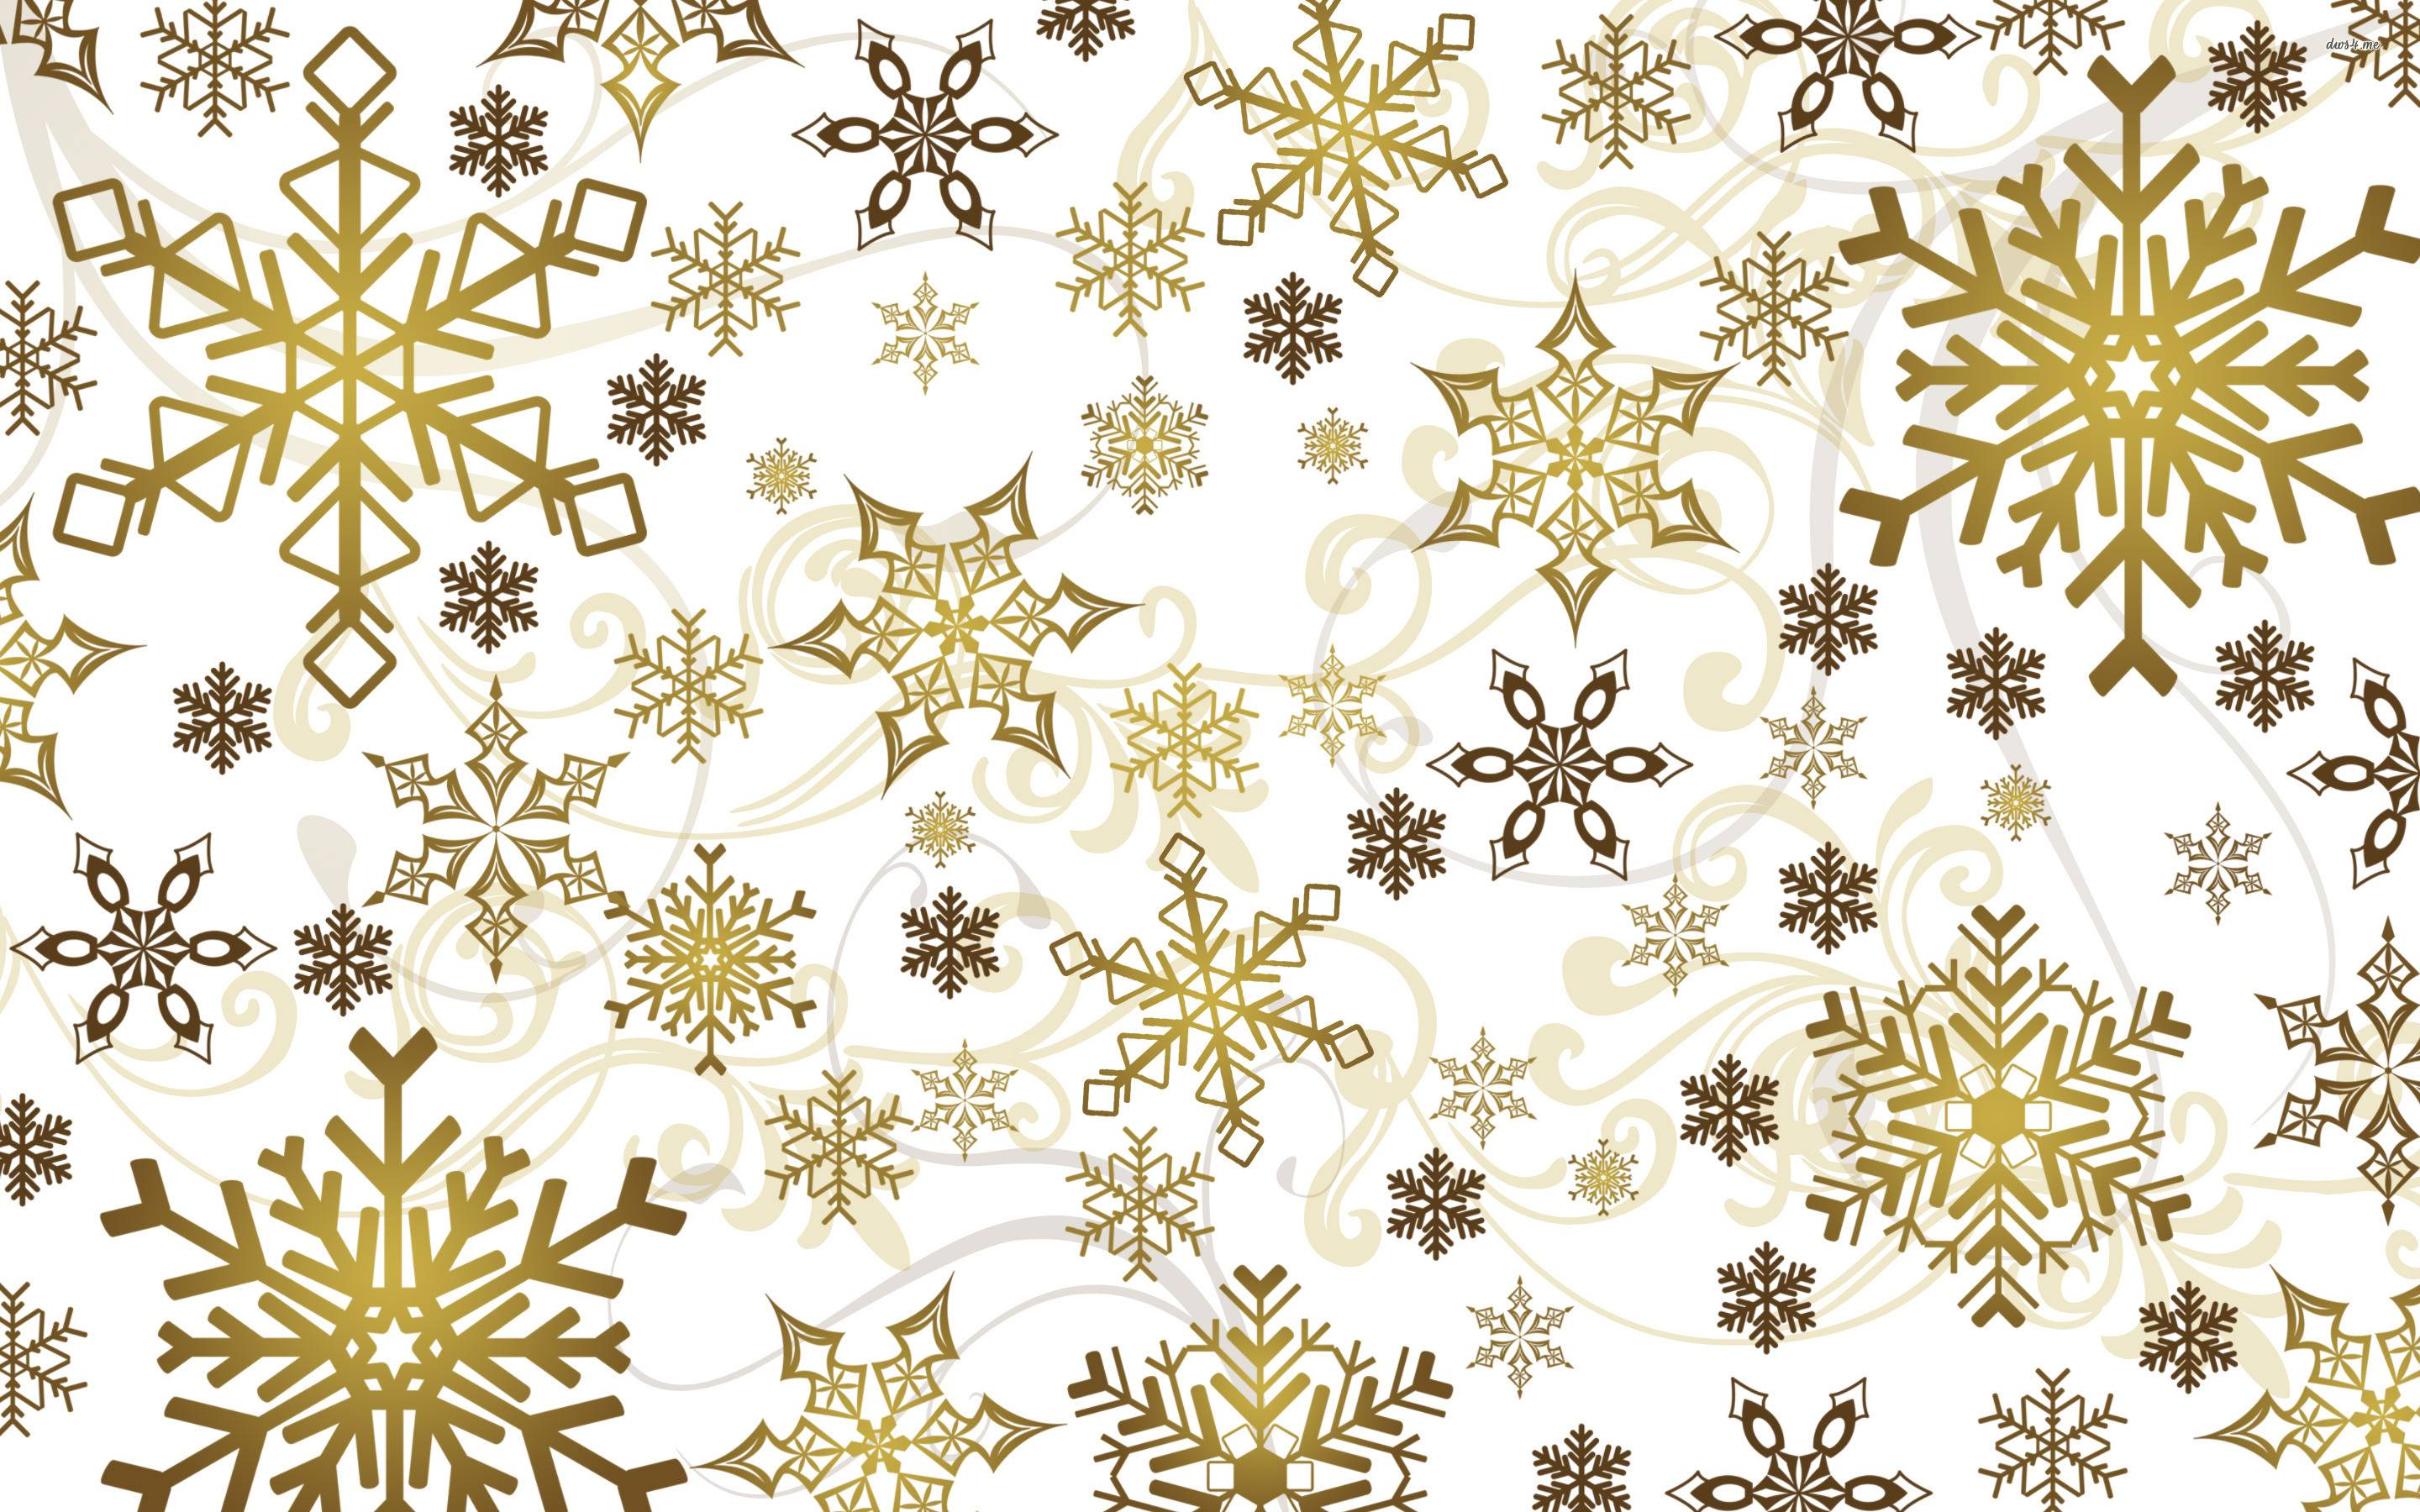 Snowflakes wallpapers wallpaper cave snowflakes wallpaper 1068544 voltagebd Choice Image